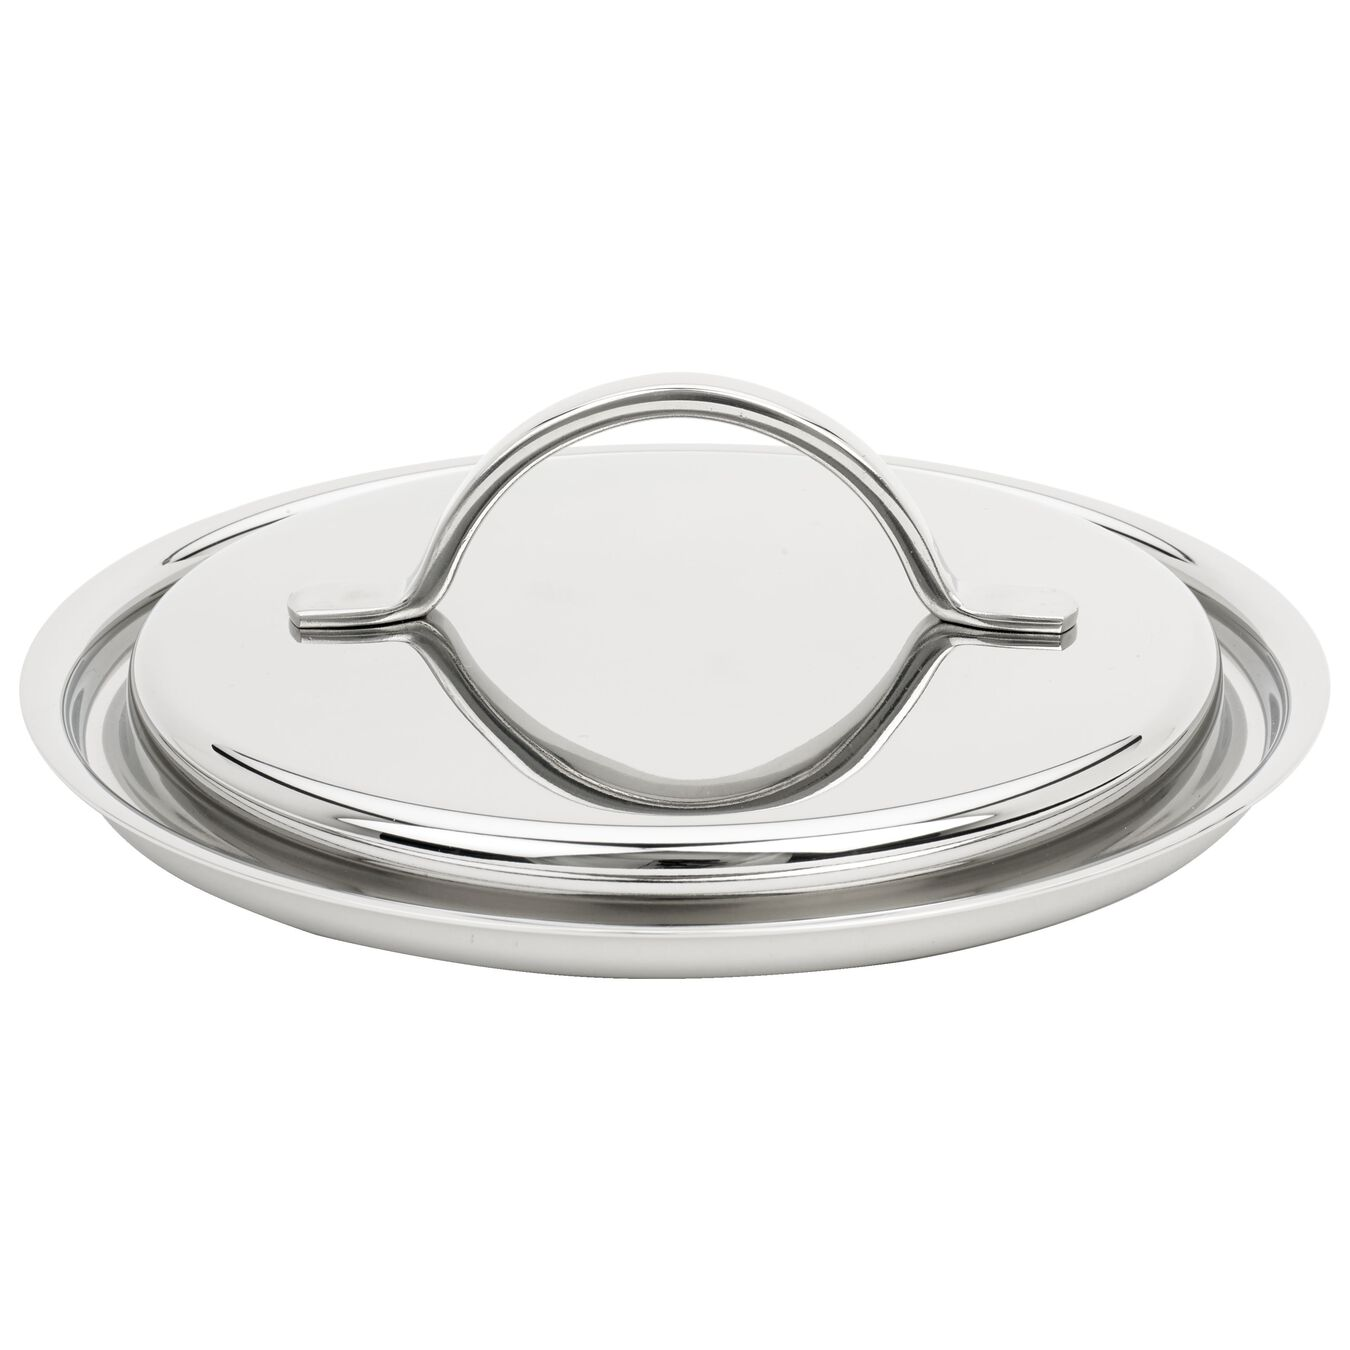 Couvercle 16 cm Inox 18/10,,large 1